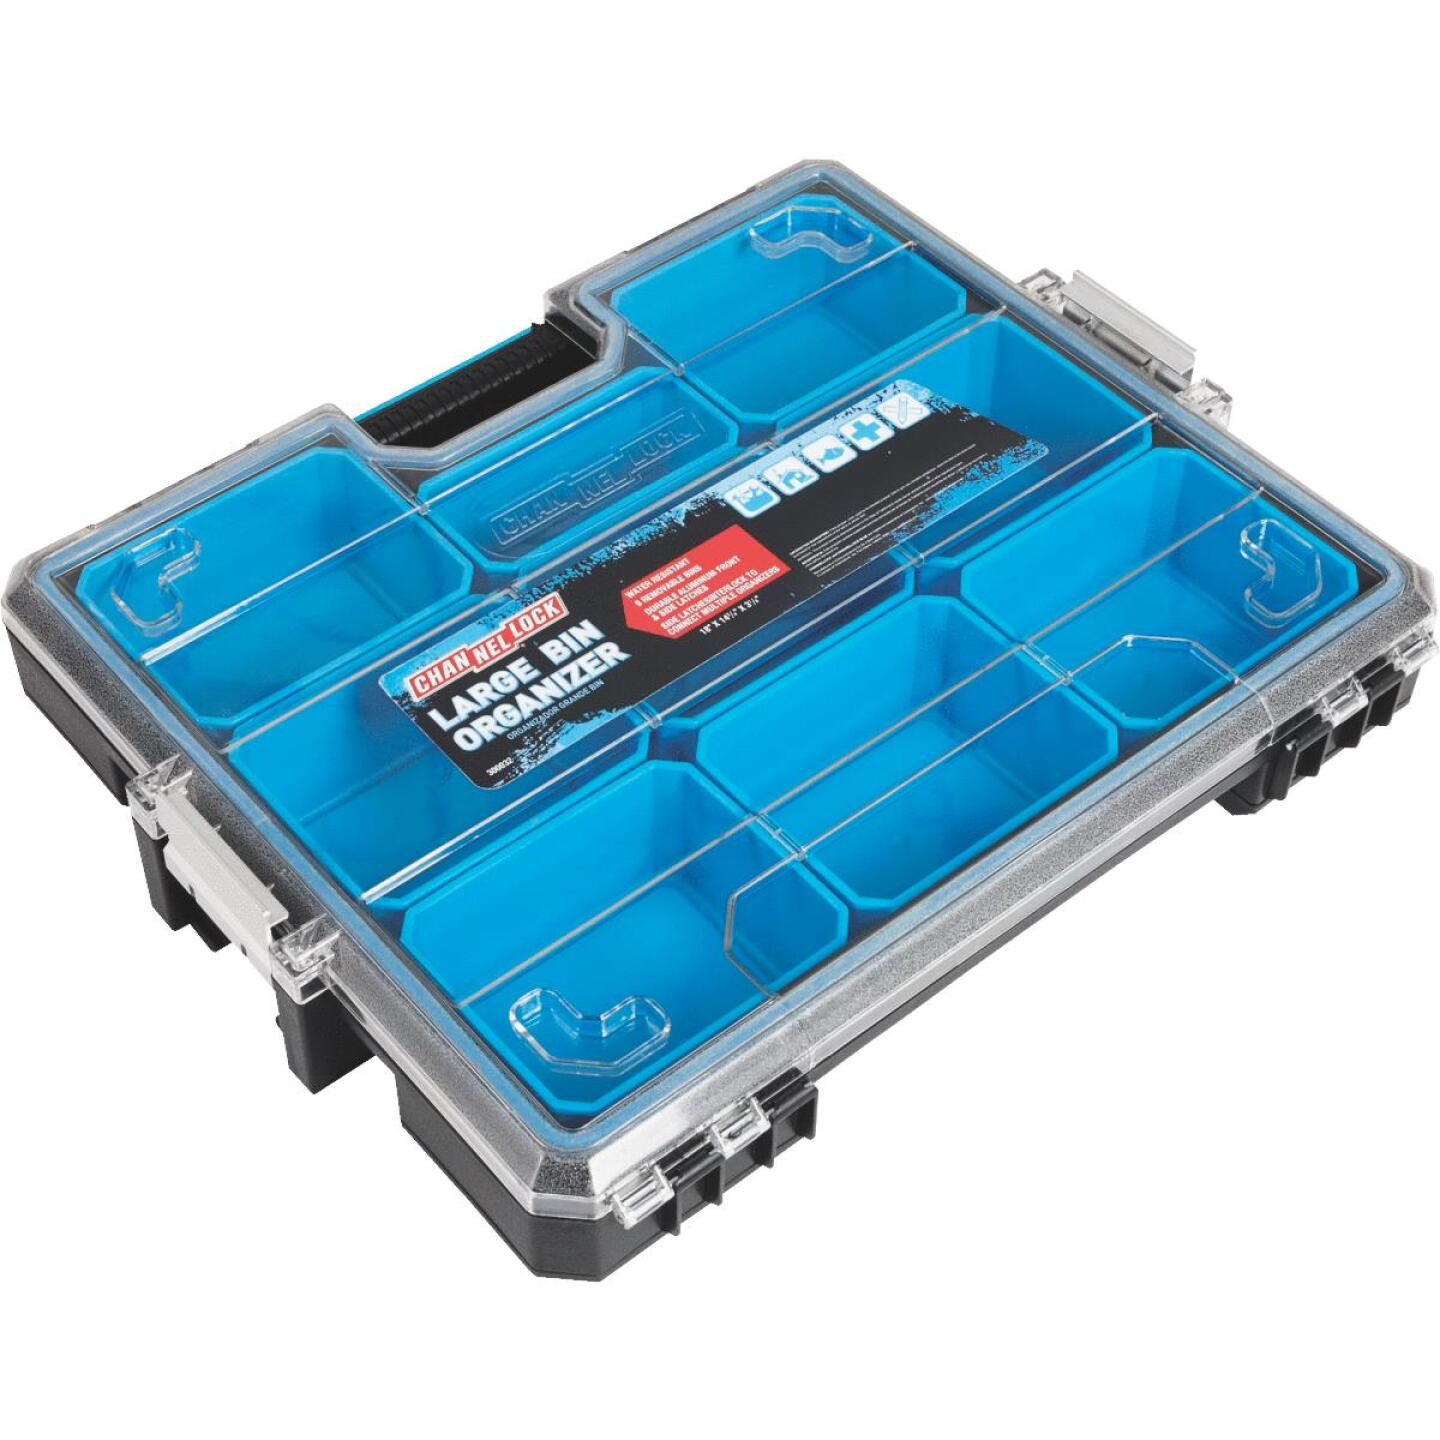 Channellock Large Parts Storage Box Image 4